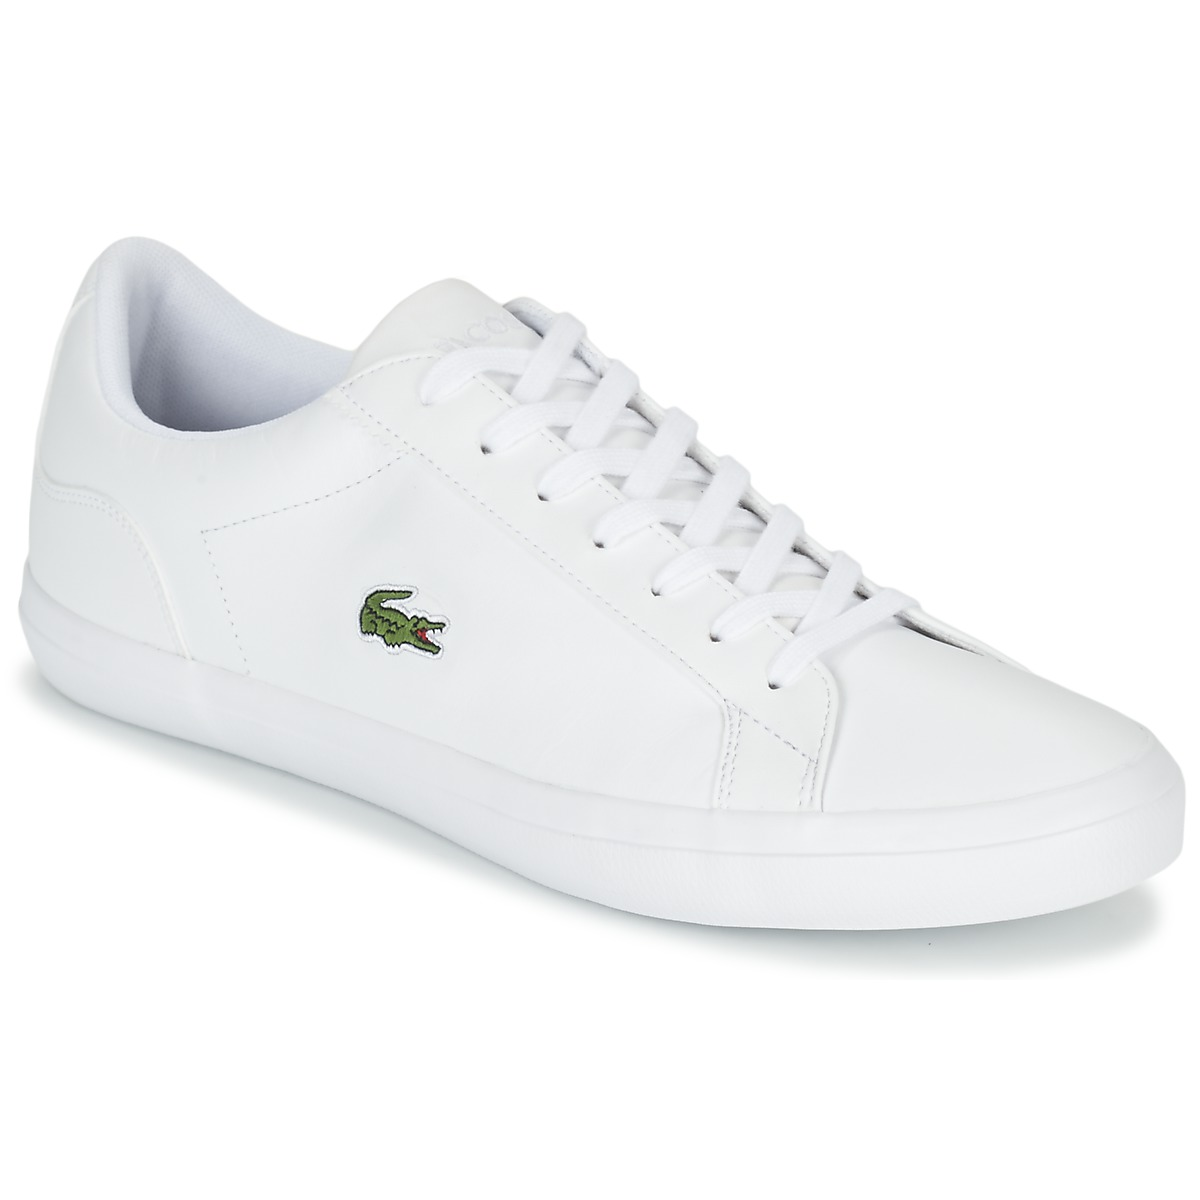 Lacoste Lerond white leather Girls trainers Size Kids 11 BRAND NEW WITH BOX